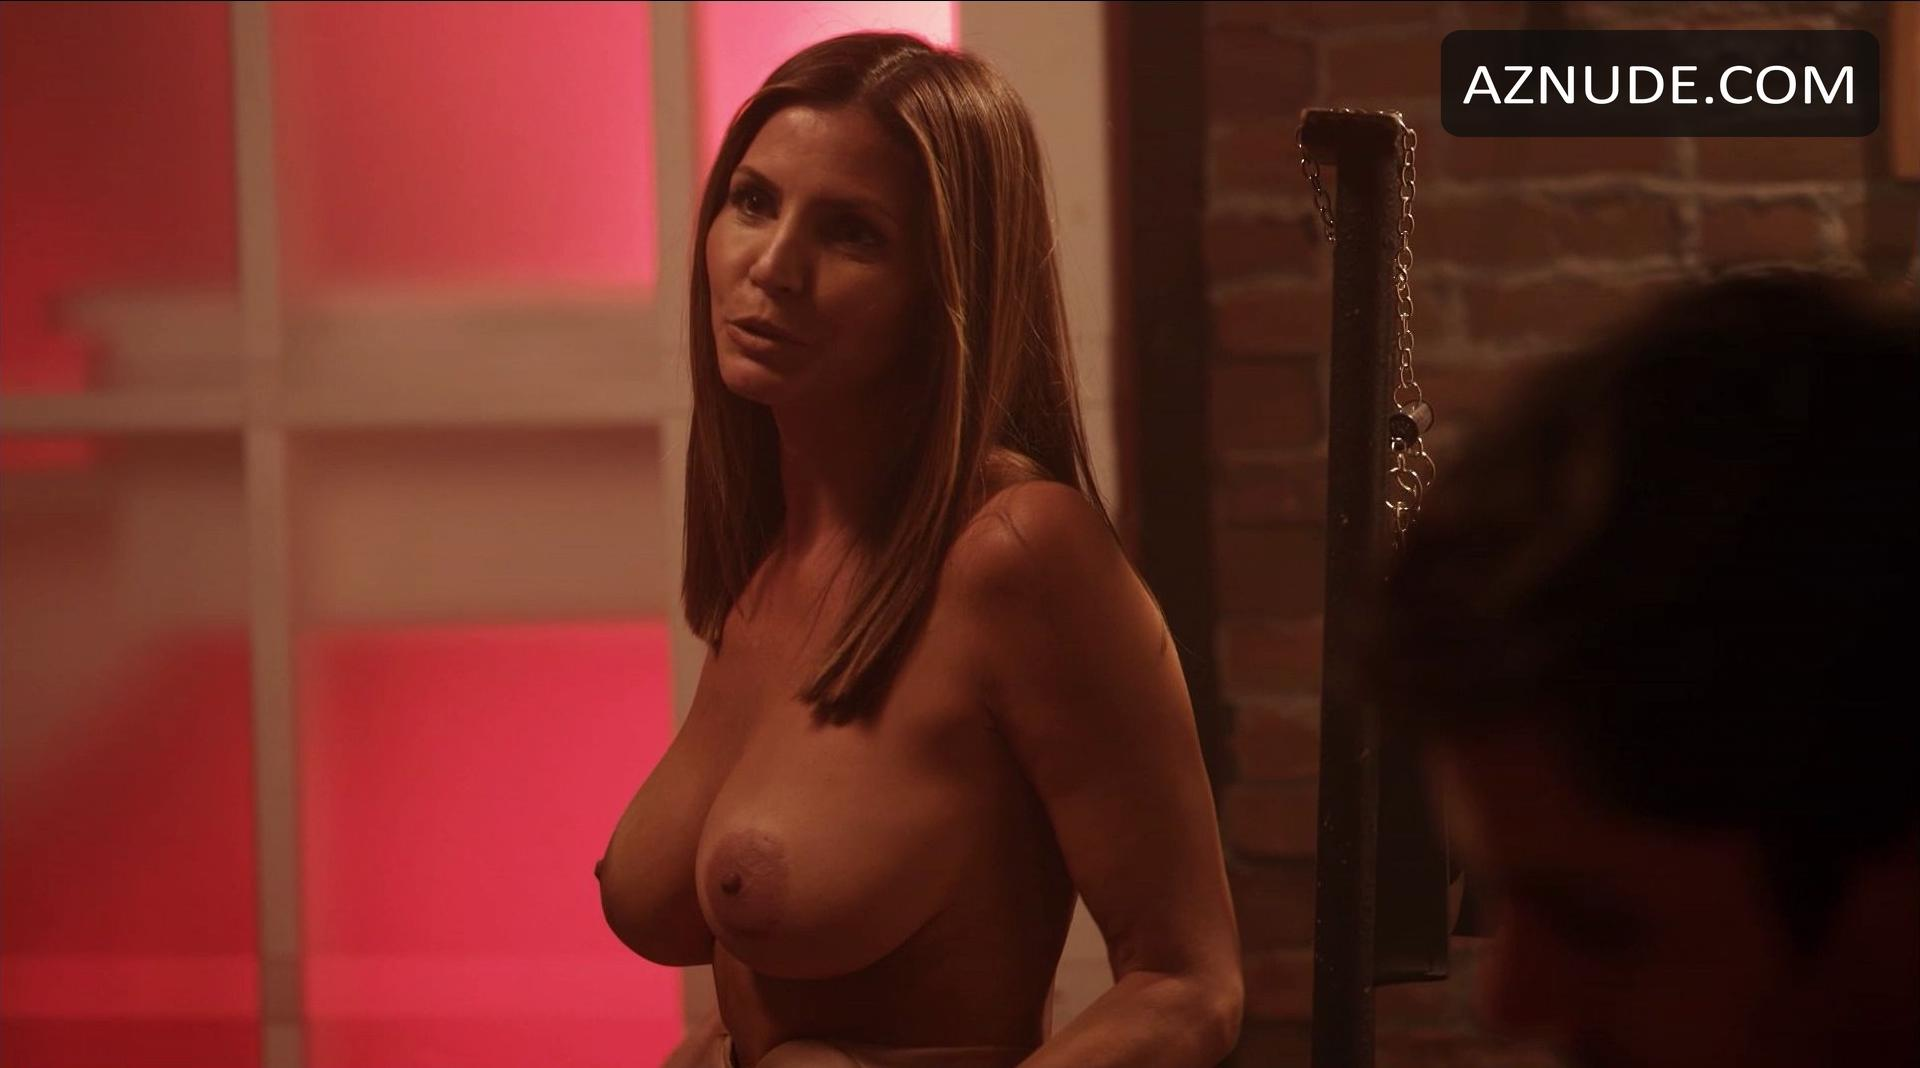 Charisma carpenter nude bound 2015